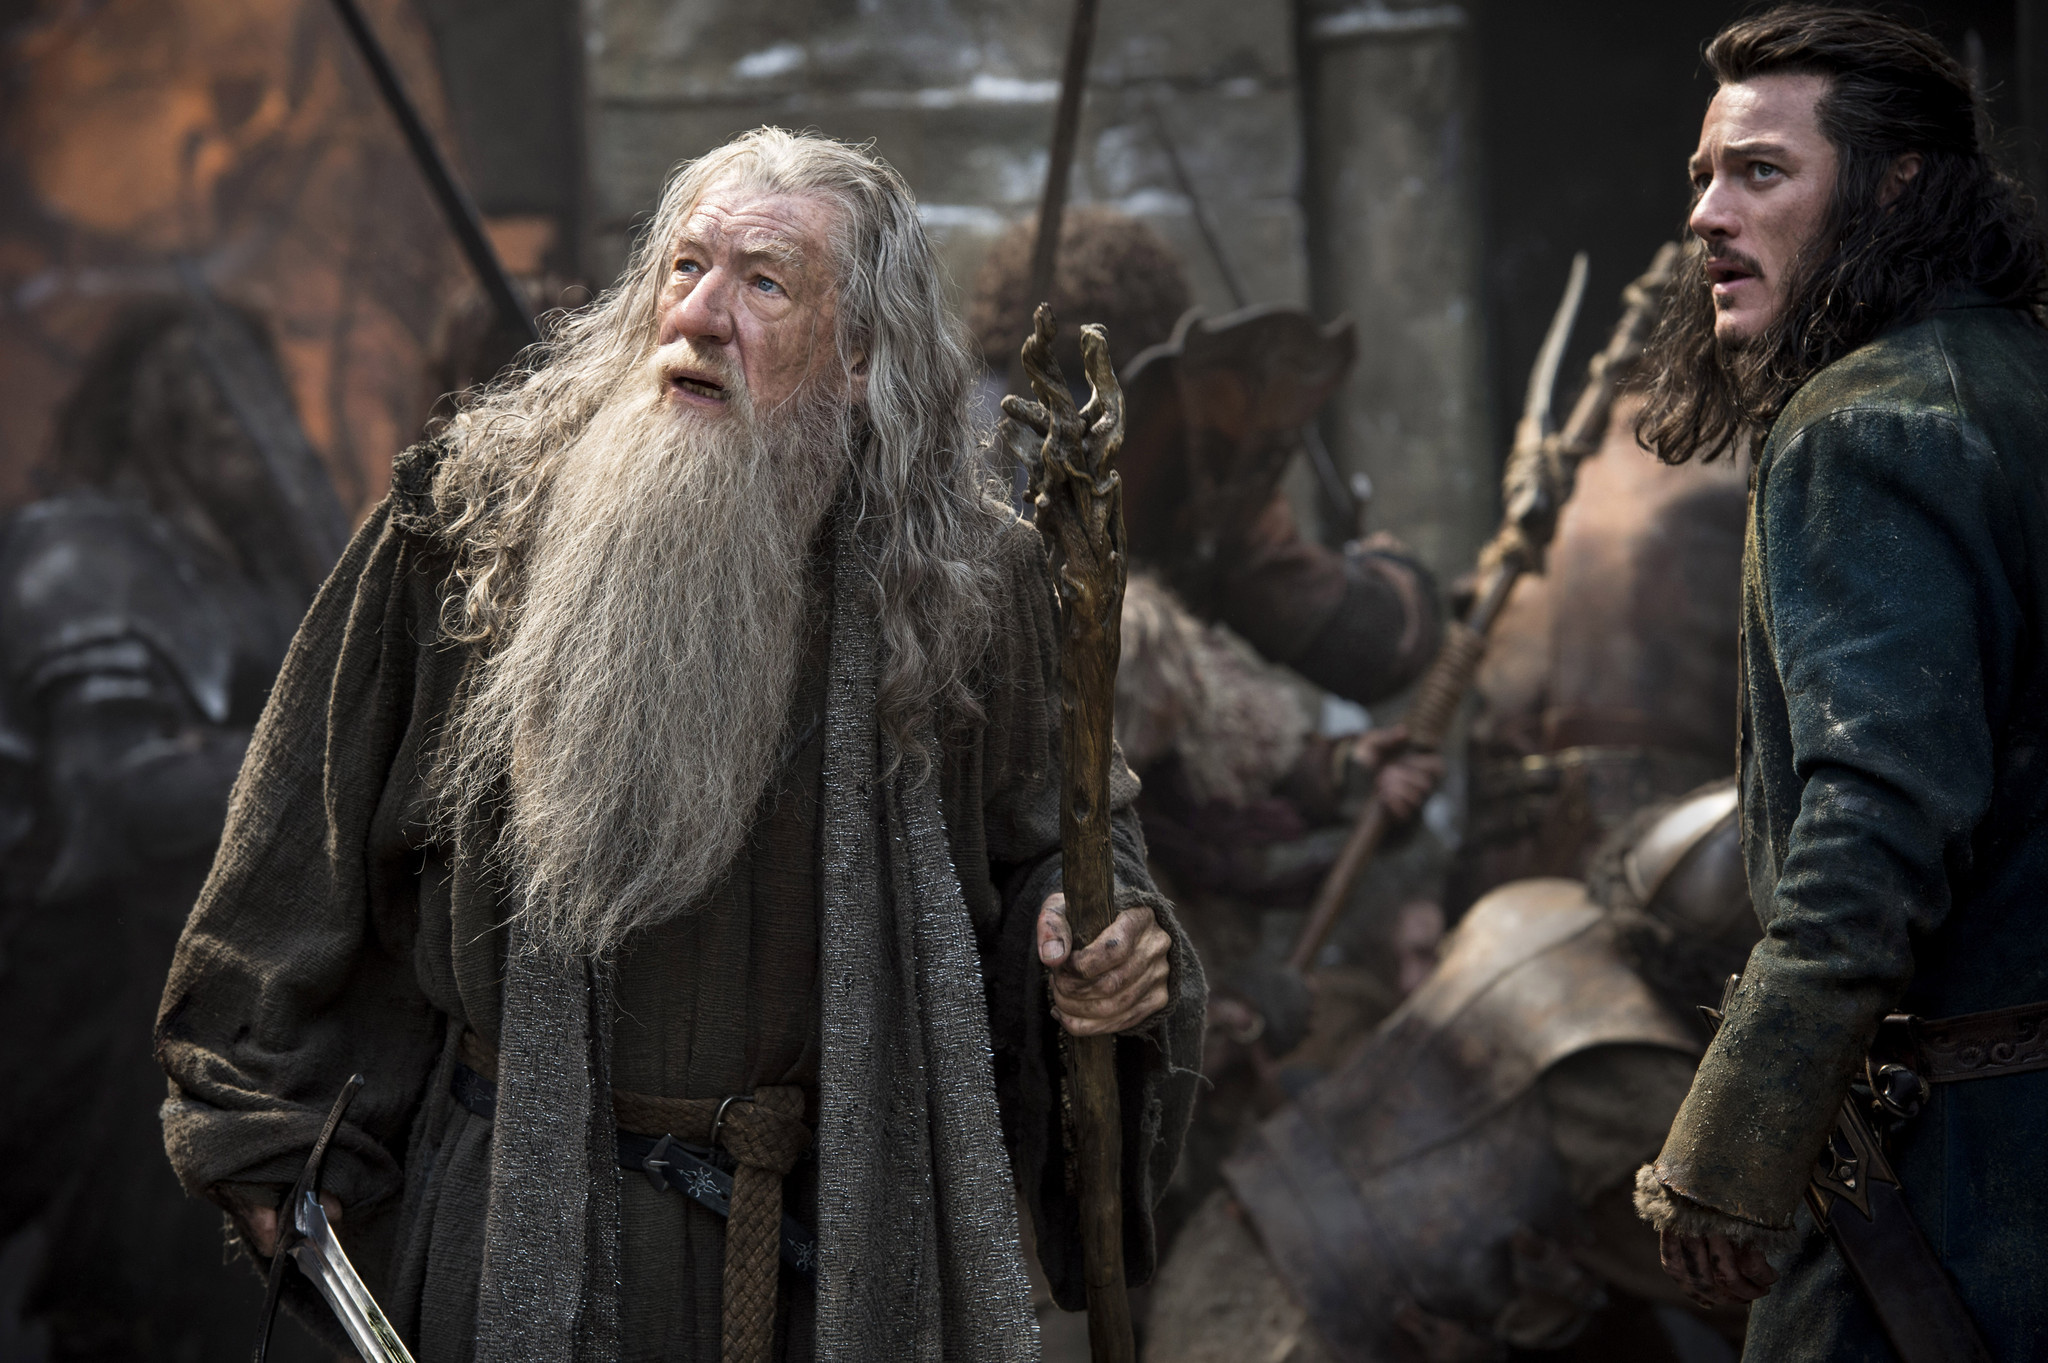 'The Hobbit: The Battle of the Five Armies' trailer readies for war